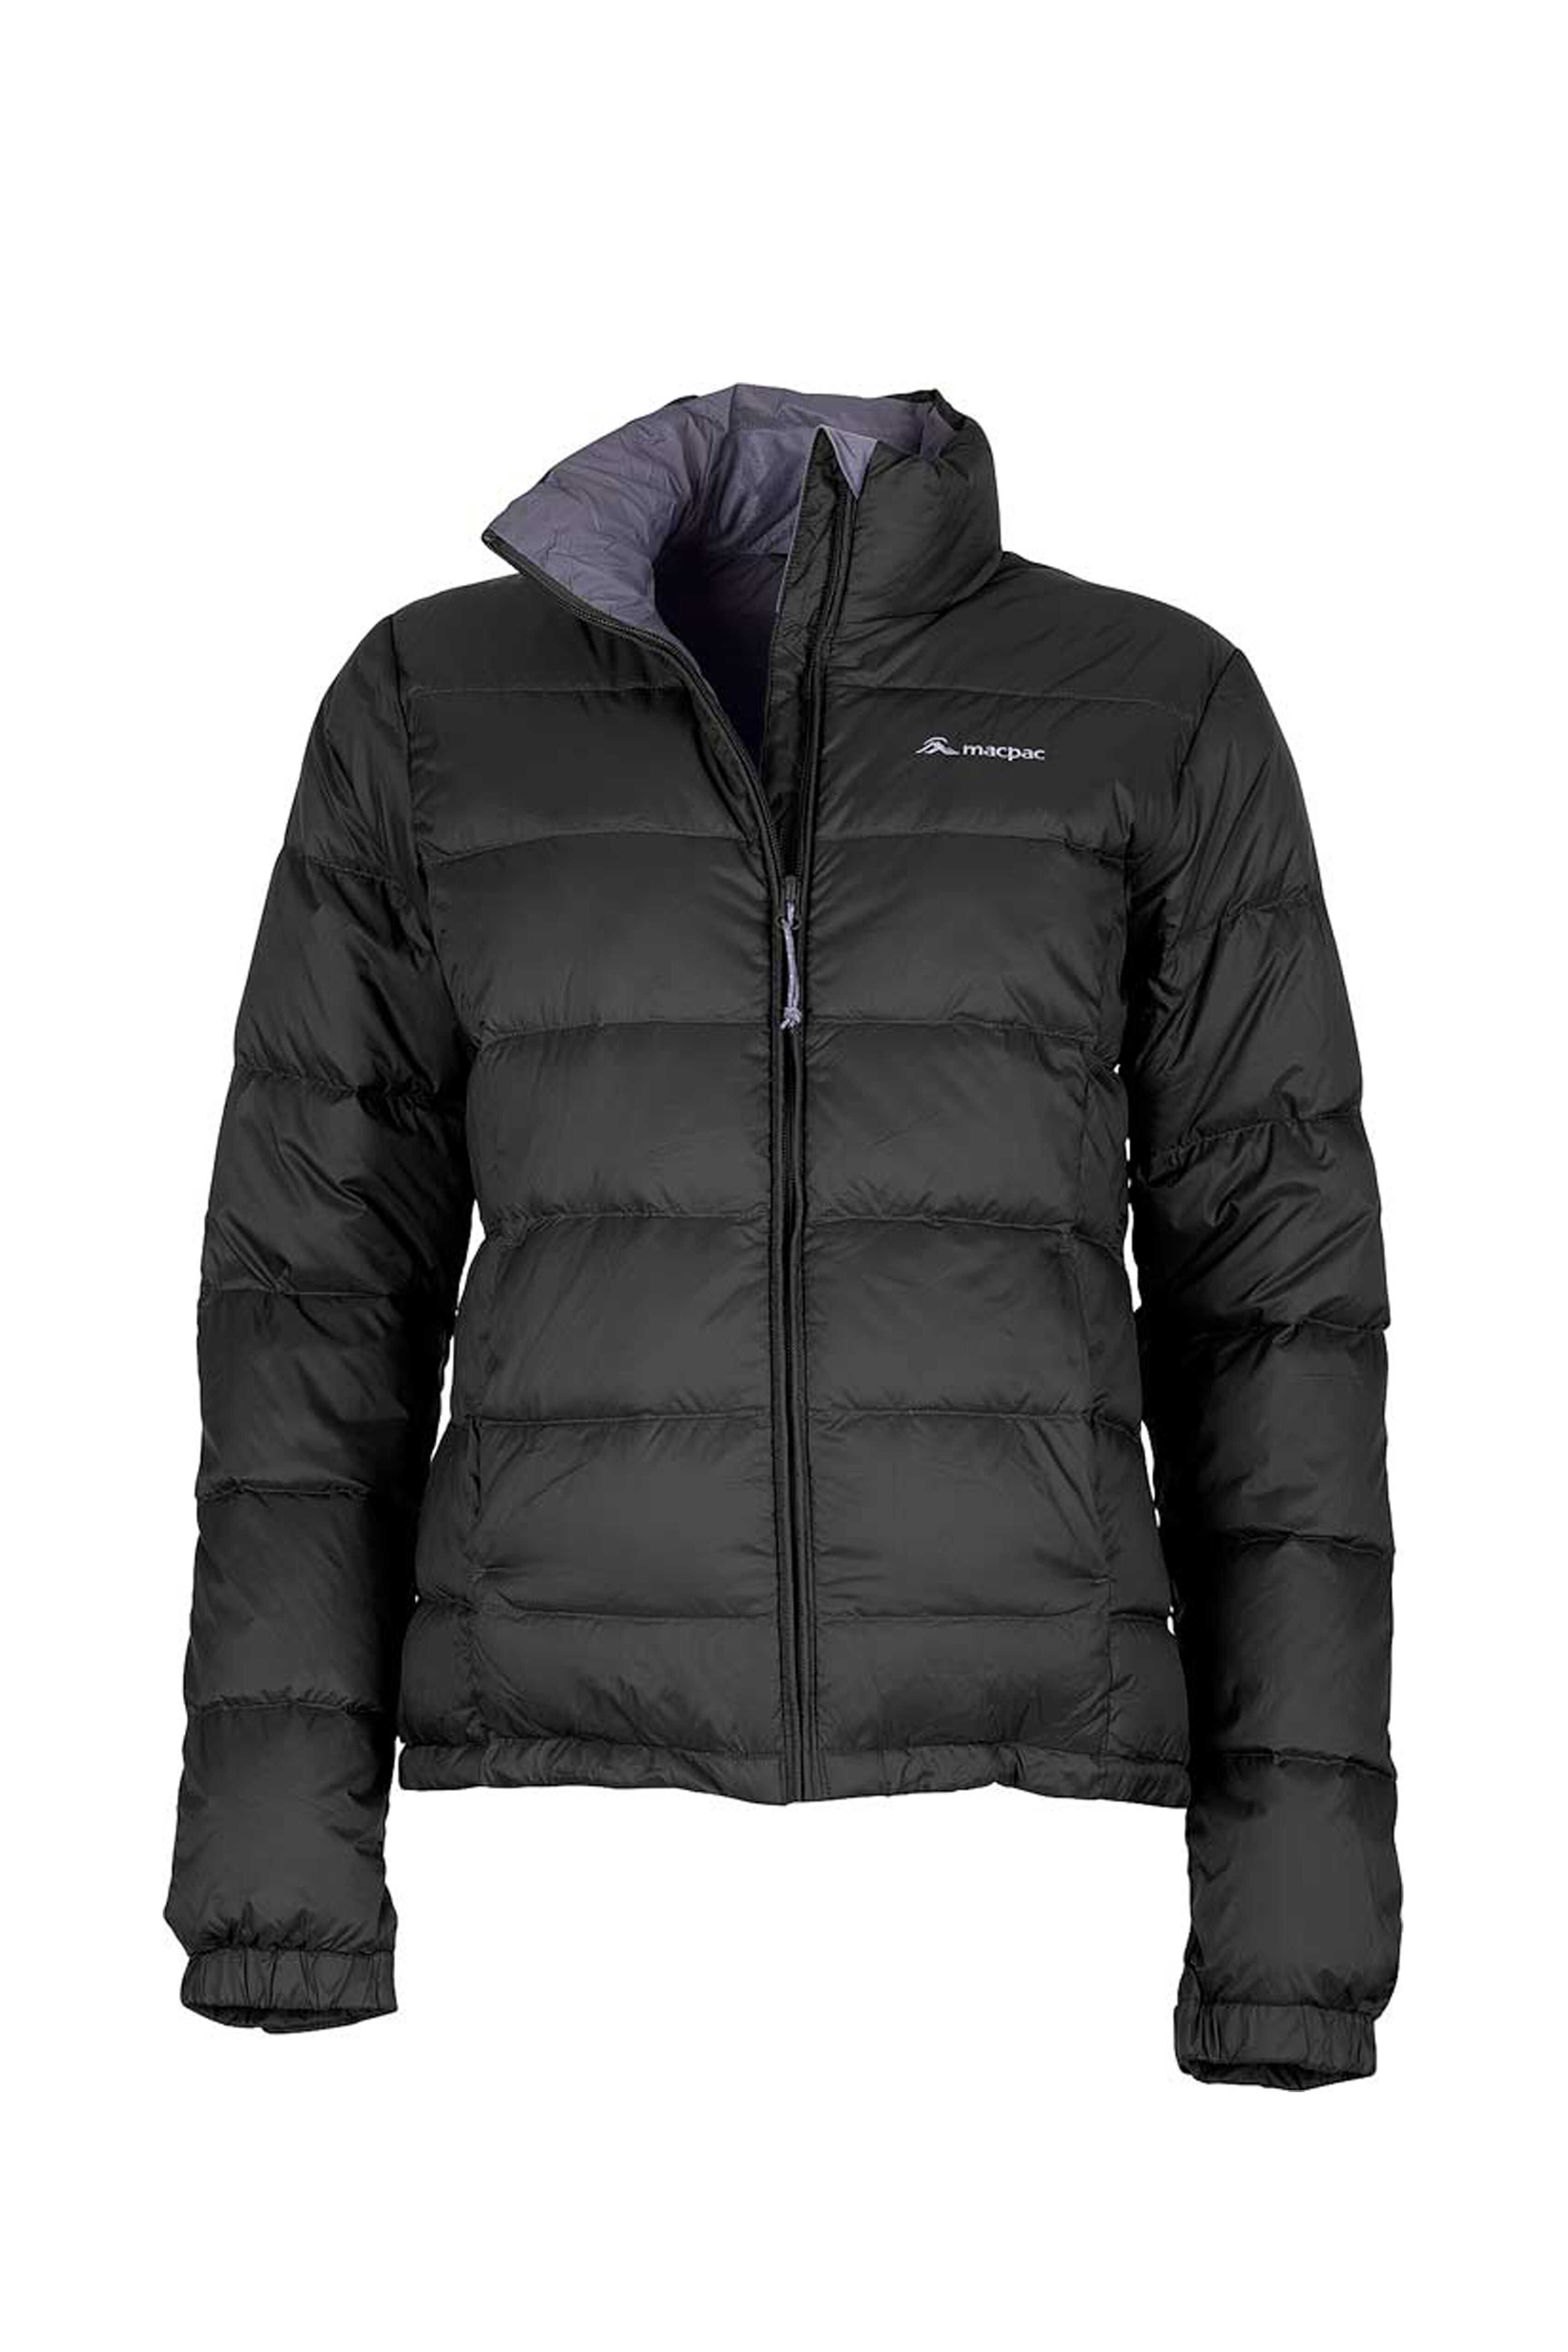 18 Best Winter Jackets For Men in 2020 [Buying Guide